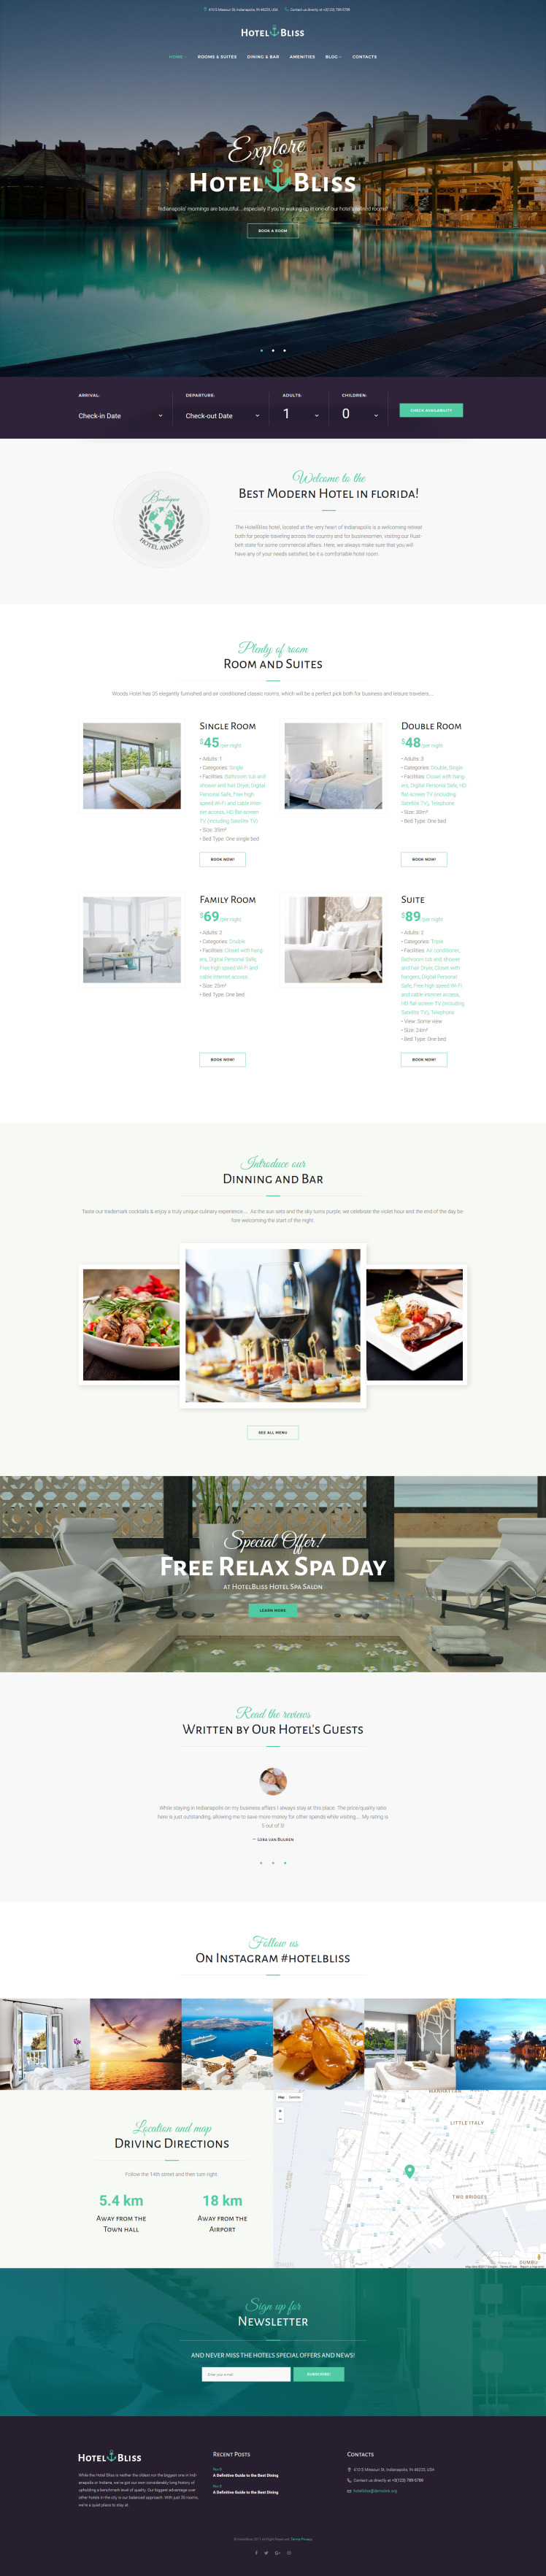 HotelBliss Spa Resort Hotel WordPress Theme